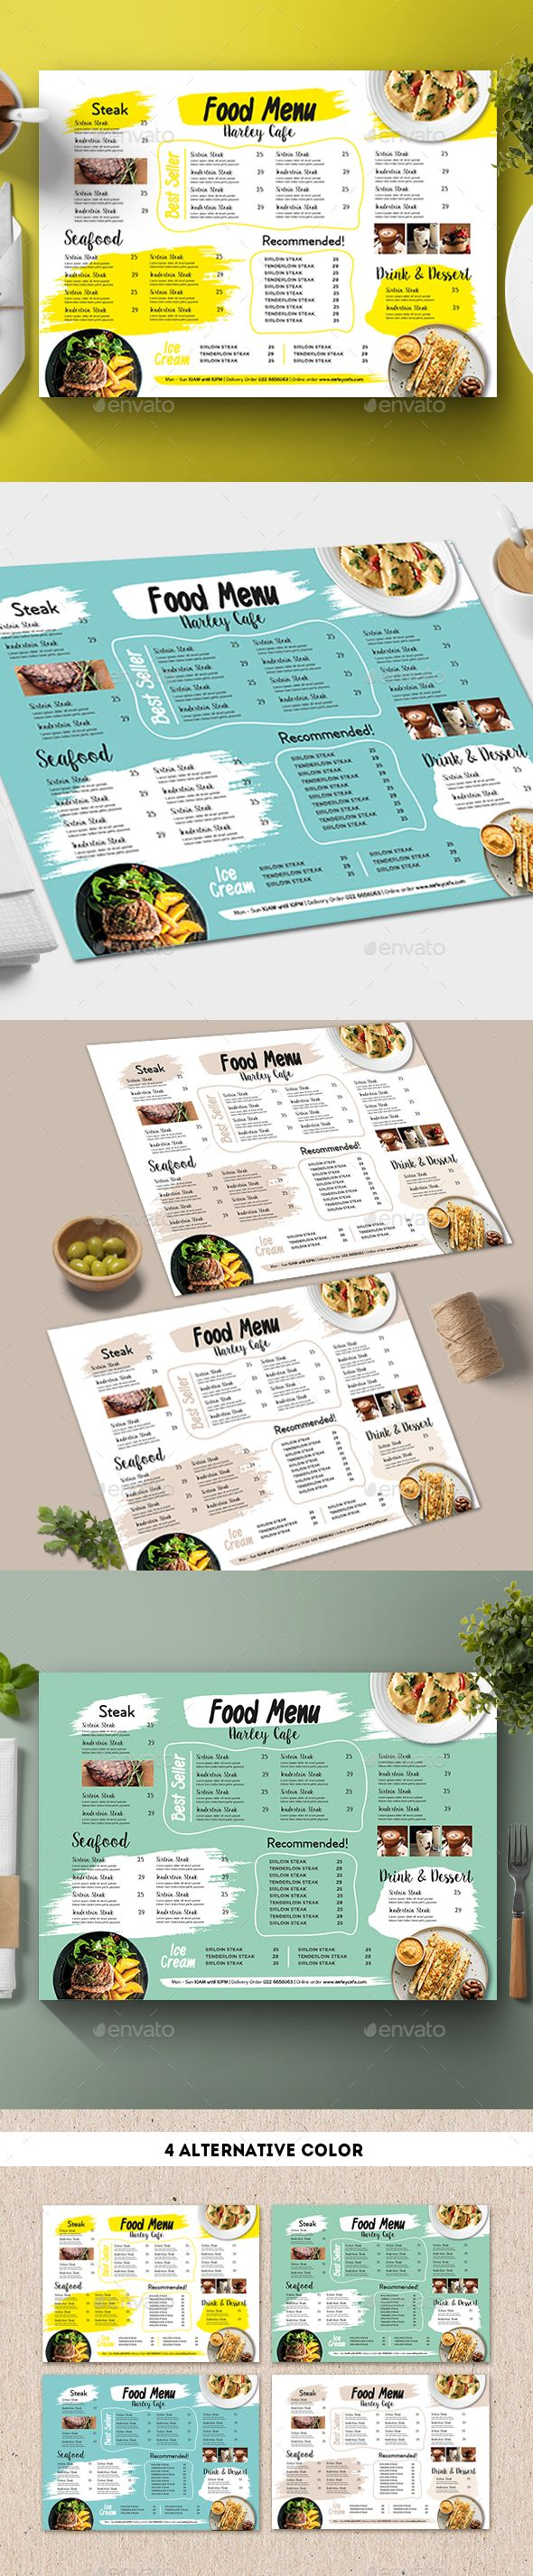 Modern Food Menu Design Template - Food Menus Print Template Vector ...